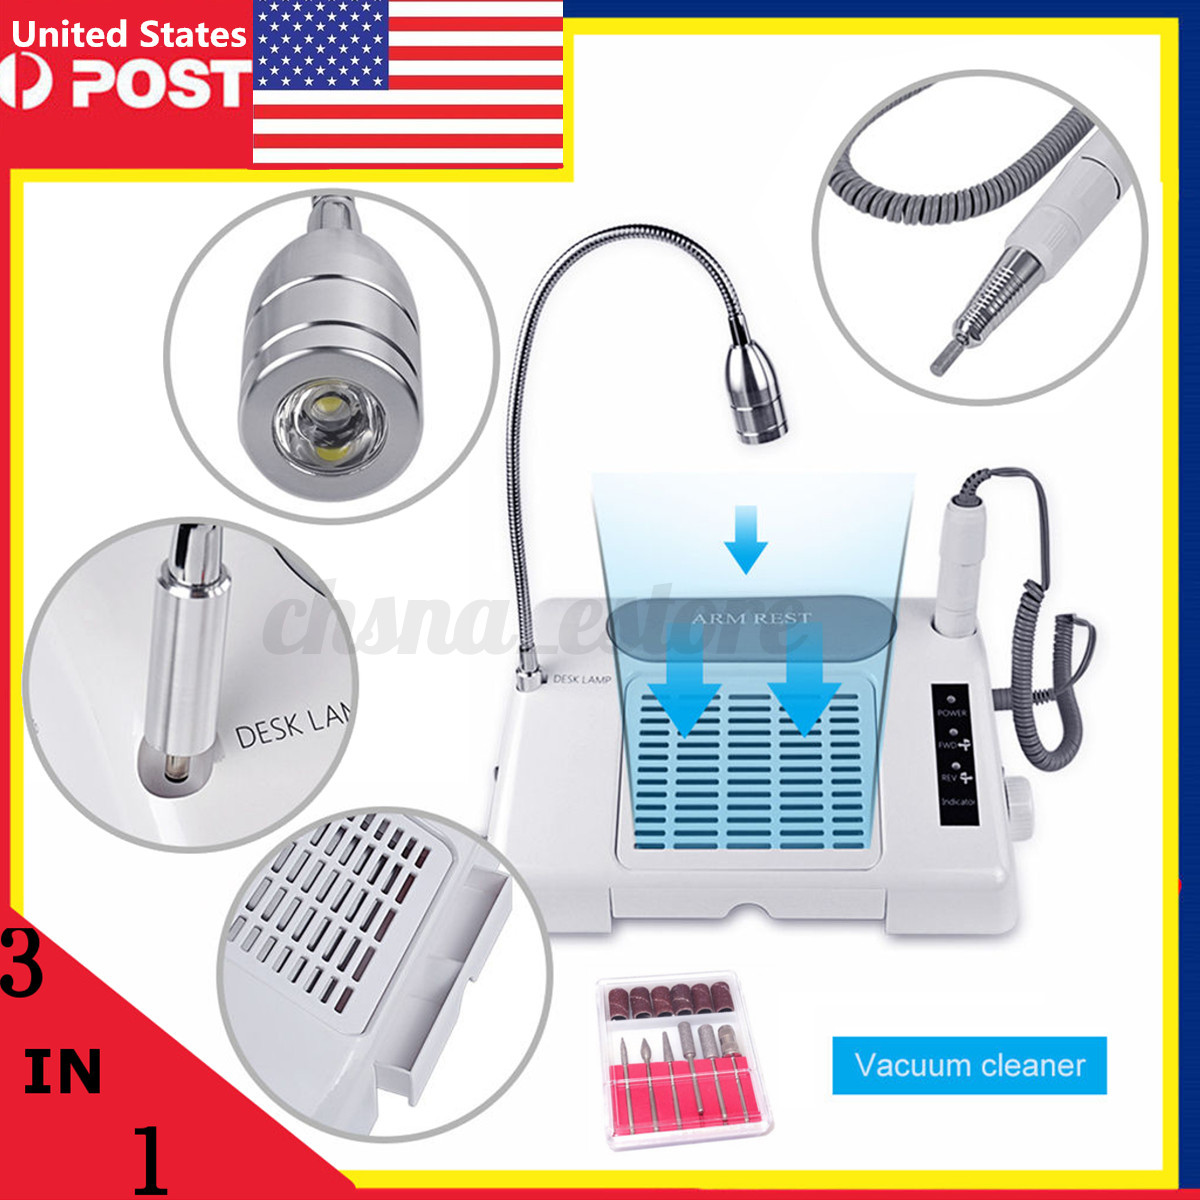 35000 RPM PRO Nail Drill Bits Dust Collector Desk Lamp 3-in-1 ...